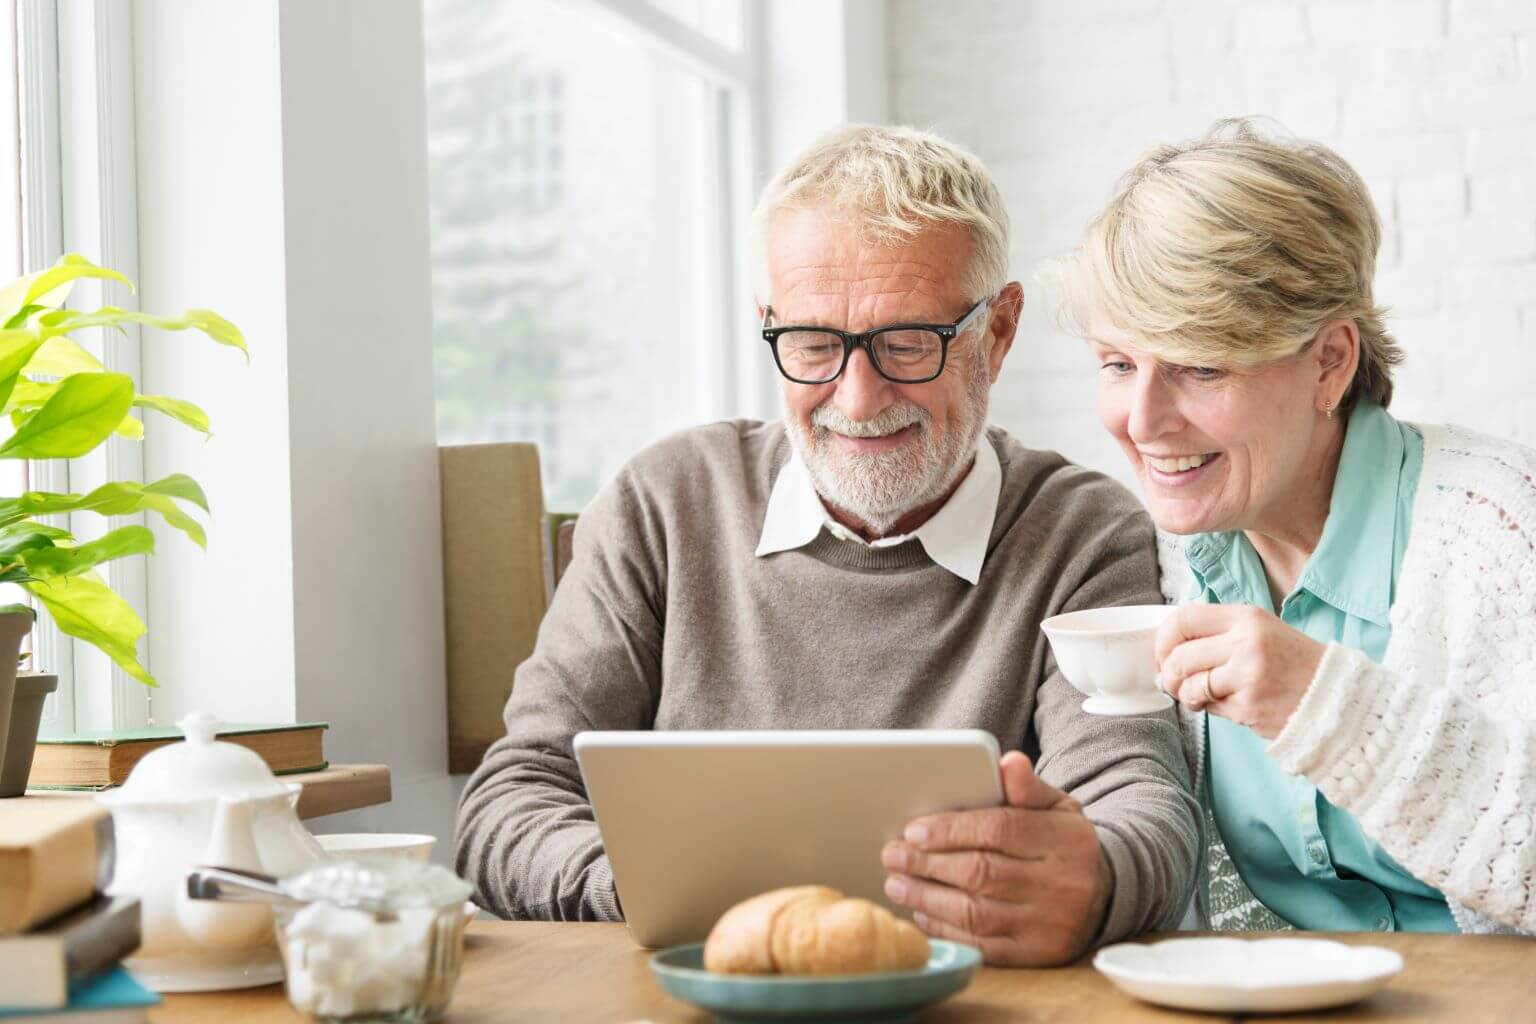 elderly-couple-looking-at-ipad